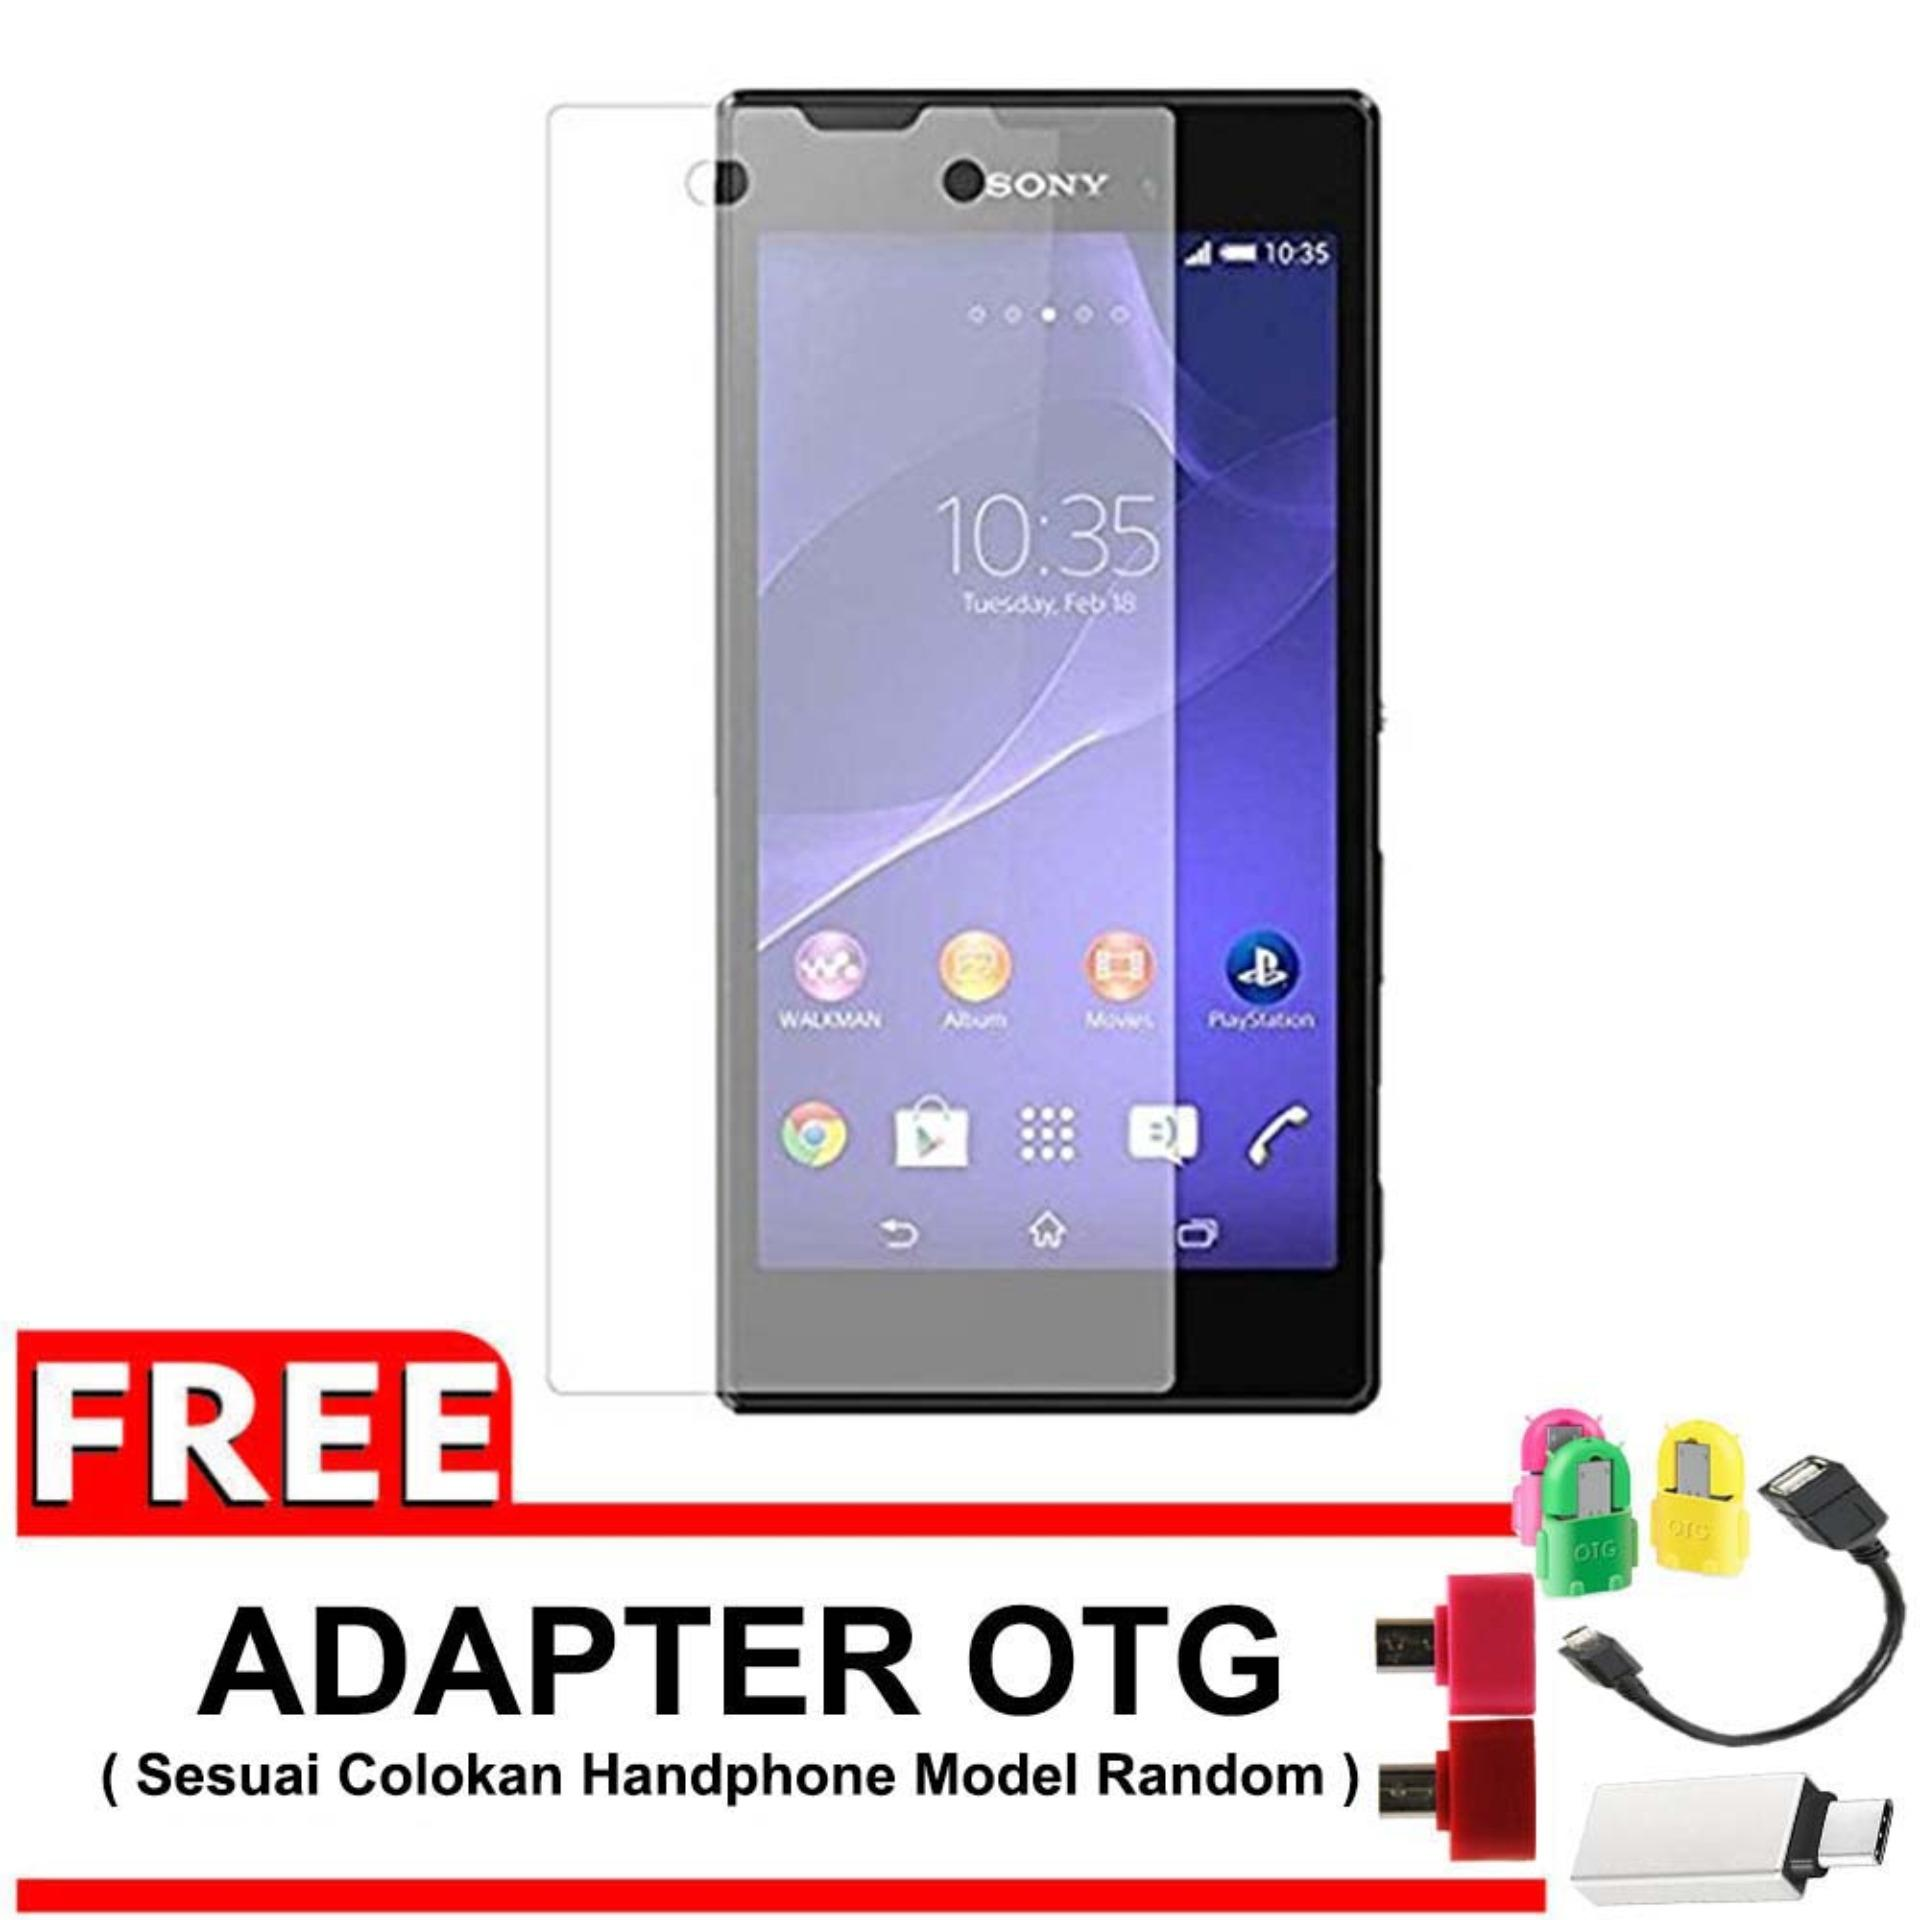 Gratis Free Adapter OTG - Bening Transparan. Source · Vn Sony Experia .